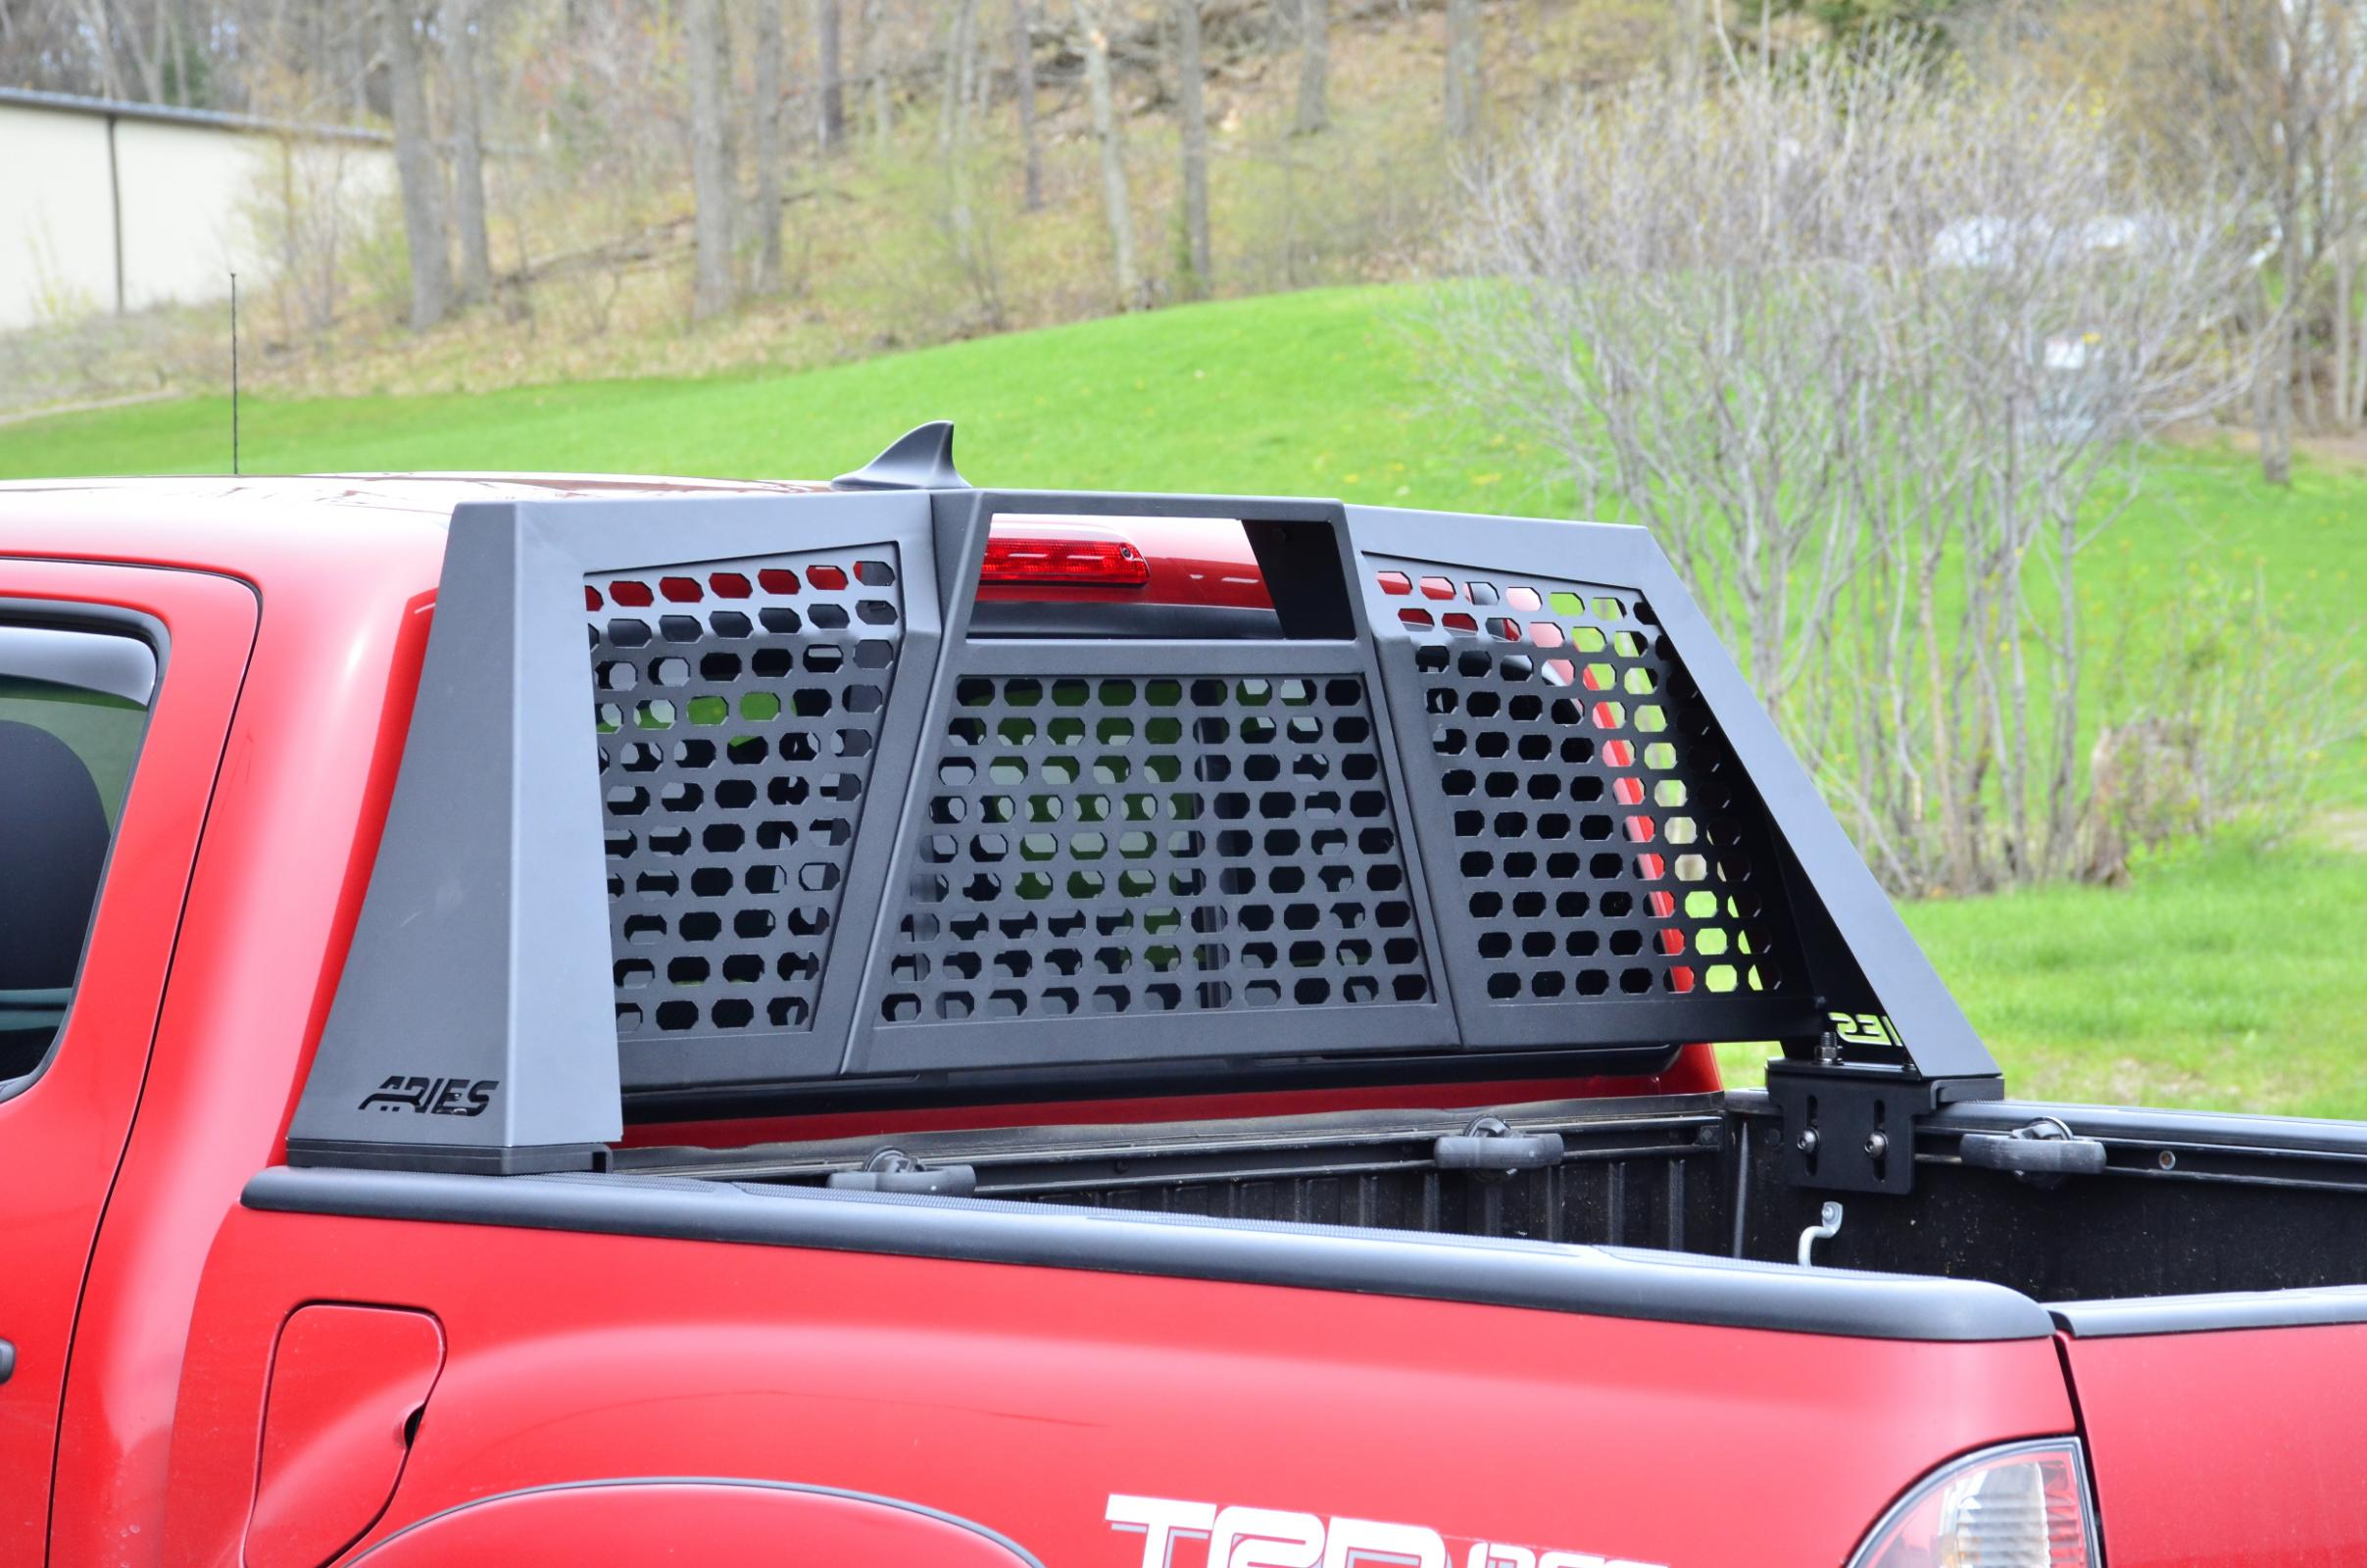 F150 With Headache Rack New Aggressive Lightweight Easy To Ship Atv A Fast Paced Marketer And Innovator Of Truck Jeep Suv Cuv Accessories Has Released Highly Functional Edgy Looking Called